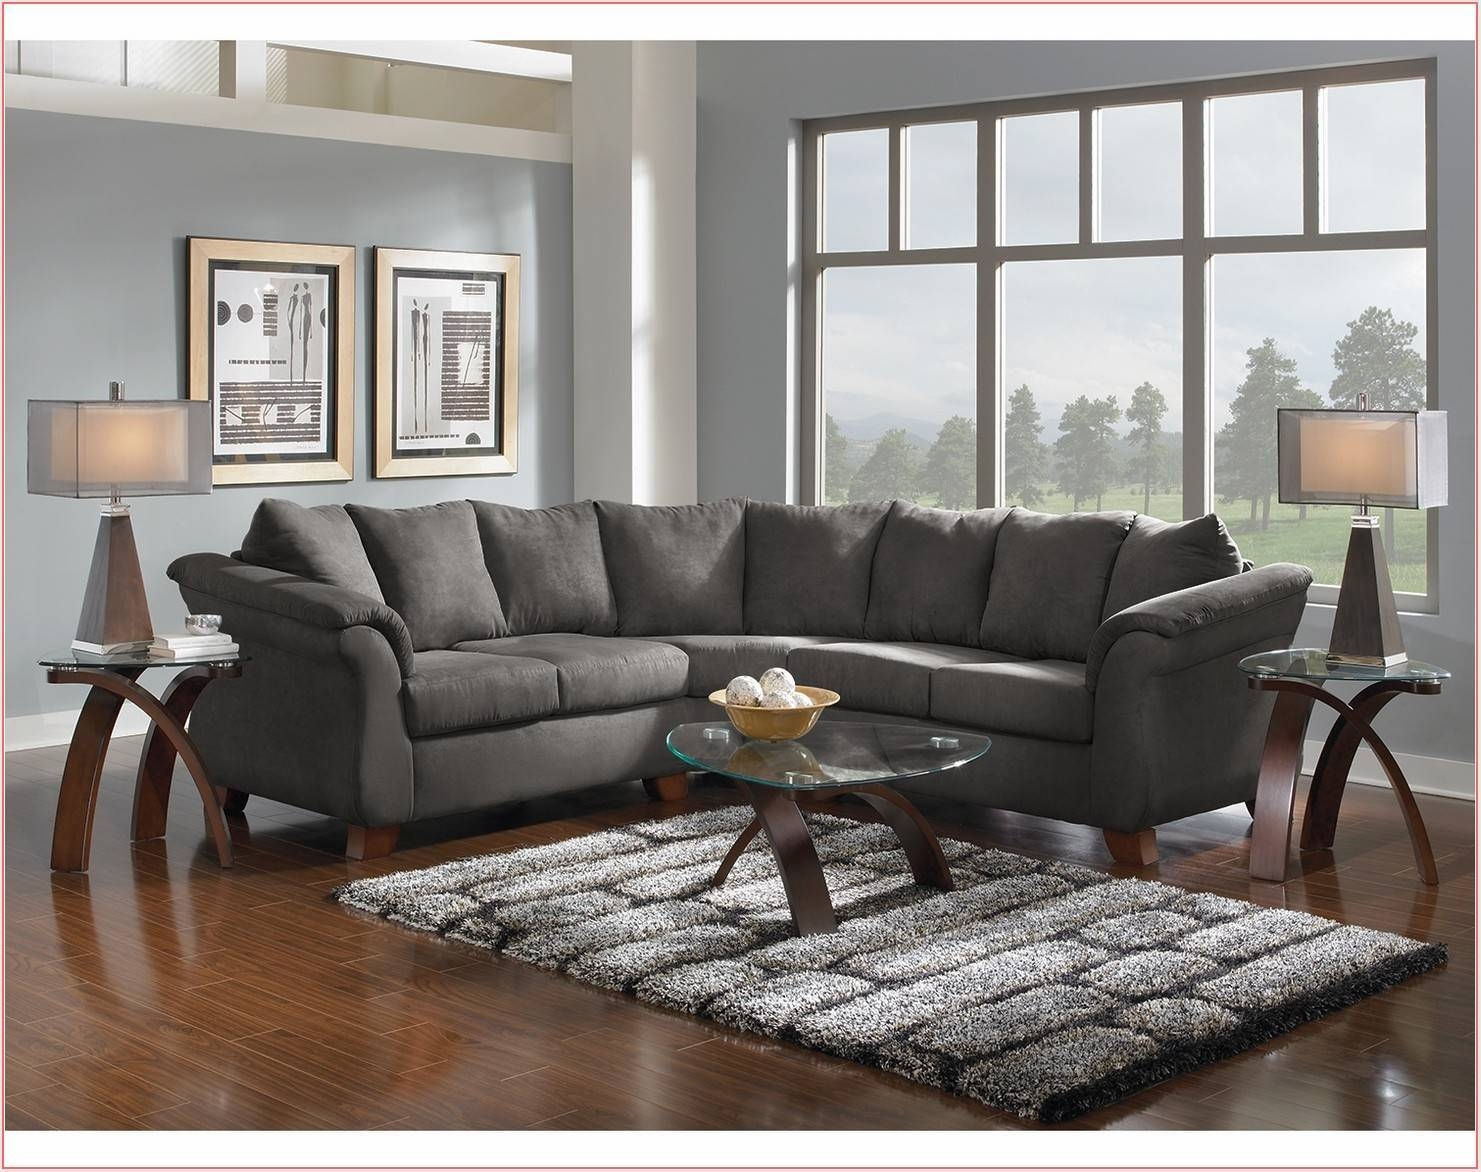 Www.cleanupflorida/wp-Content/uploads/2017/04/ for Compact Sectional Sofas (Image 17 of 30)